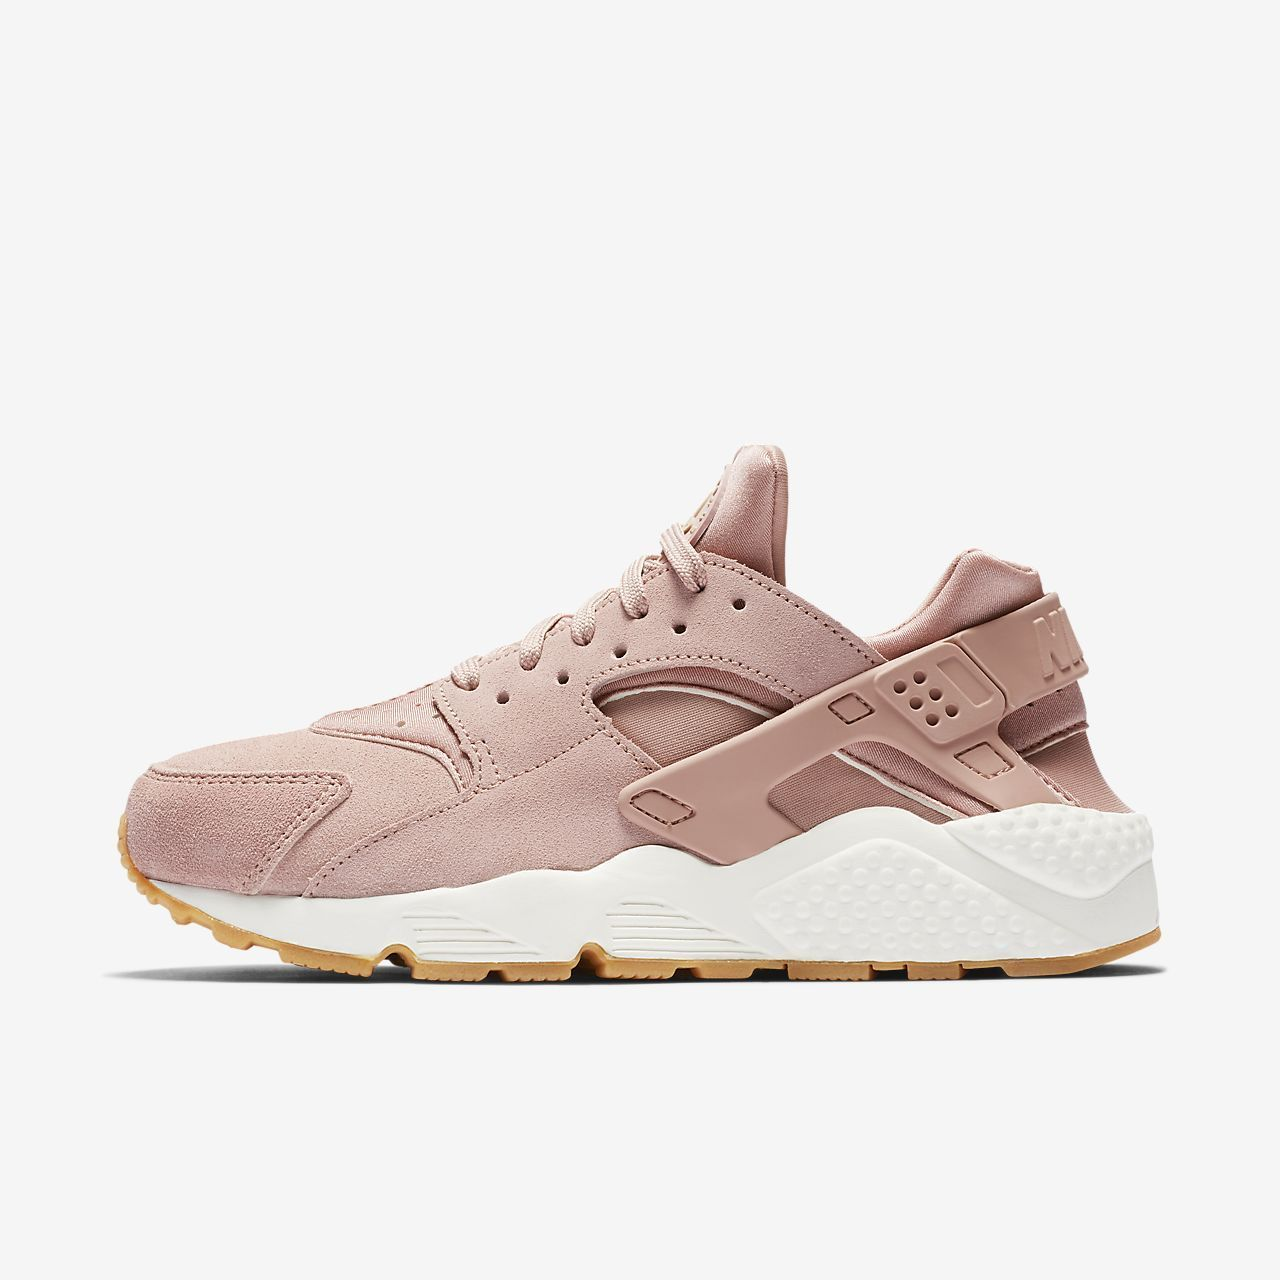 big sale 12875 f9f88 Nike Air Huarache SD THROWBACK DESIGN, MODERN COMFORT. The Nike Air Huarache  SD Womens Shoe optimizes the 90s icon for modern comfort while maintaining  the ...